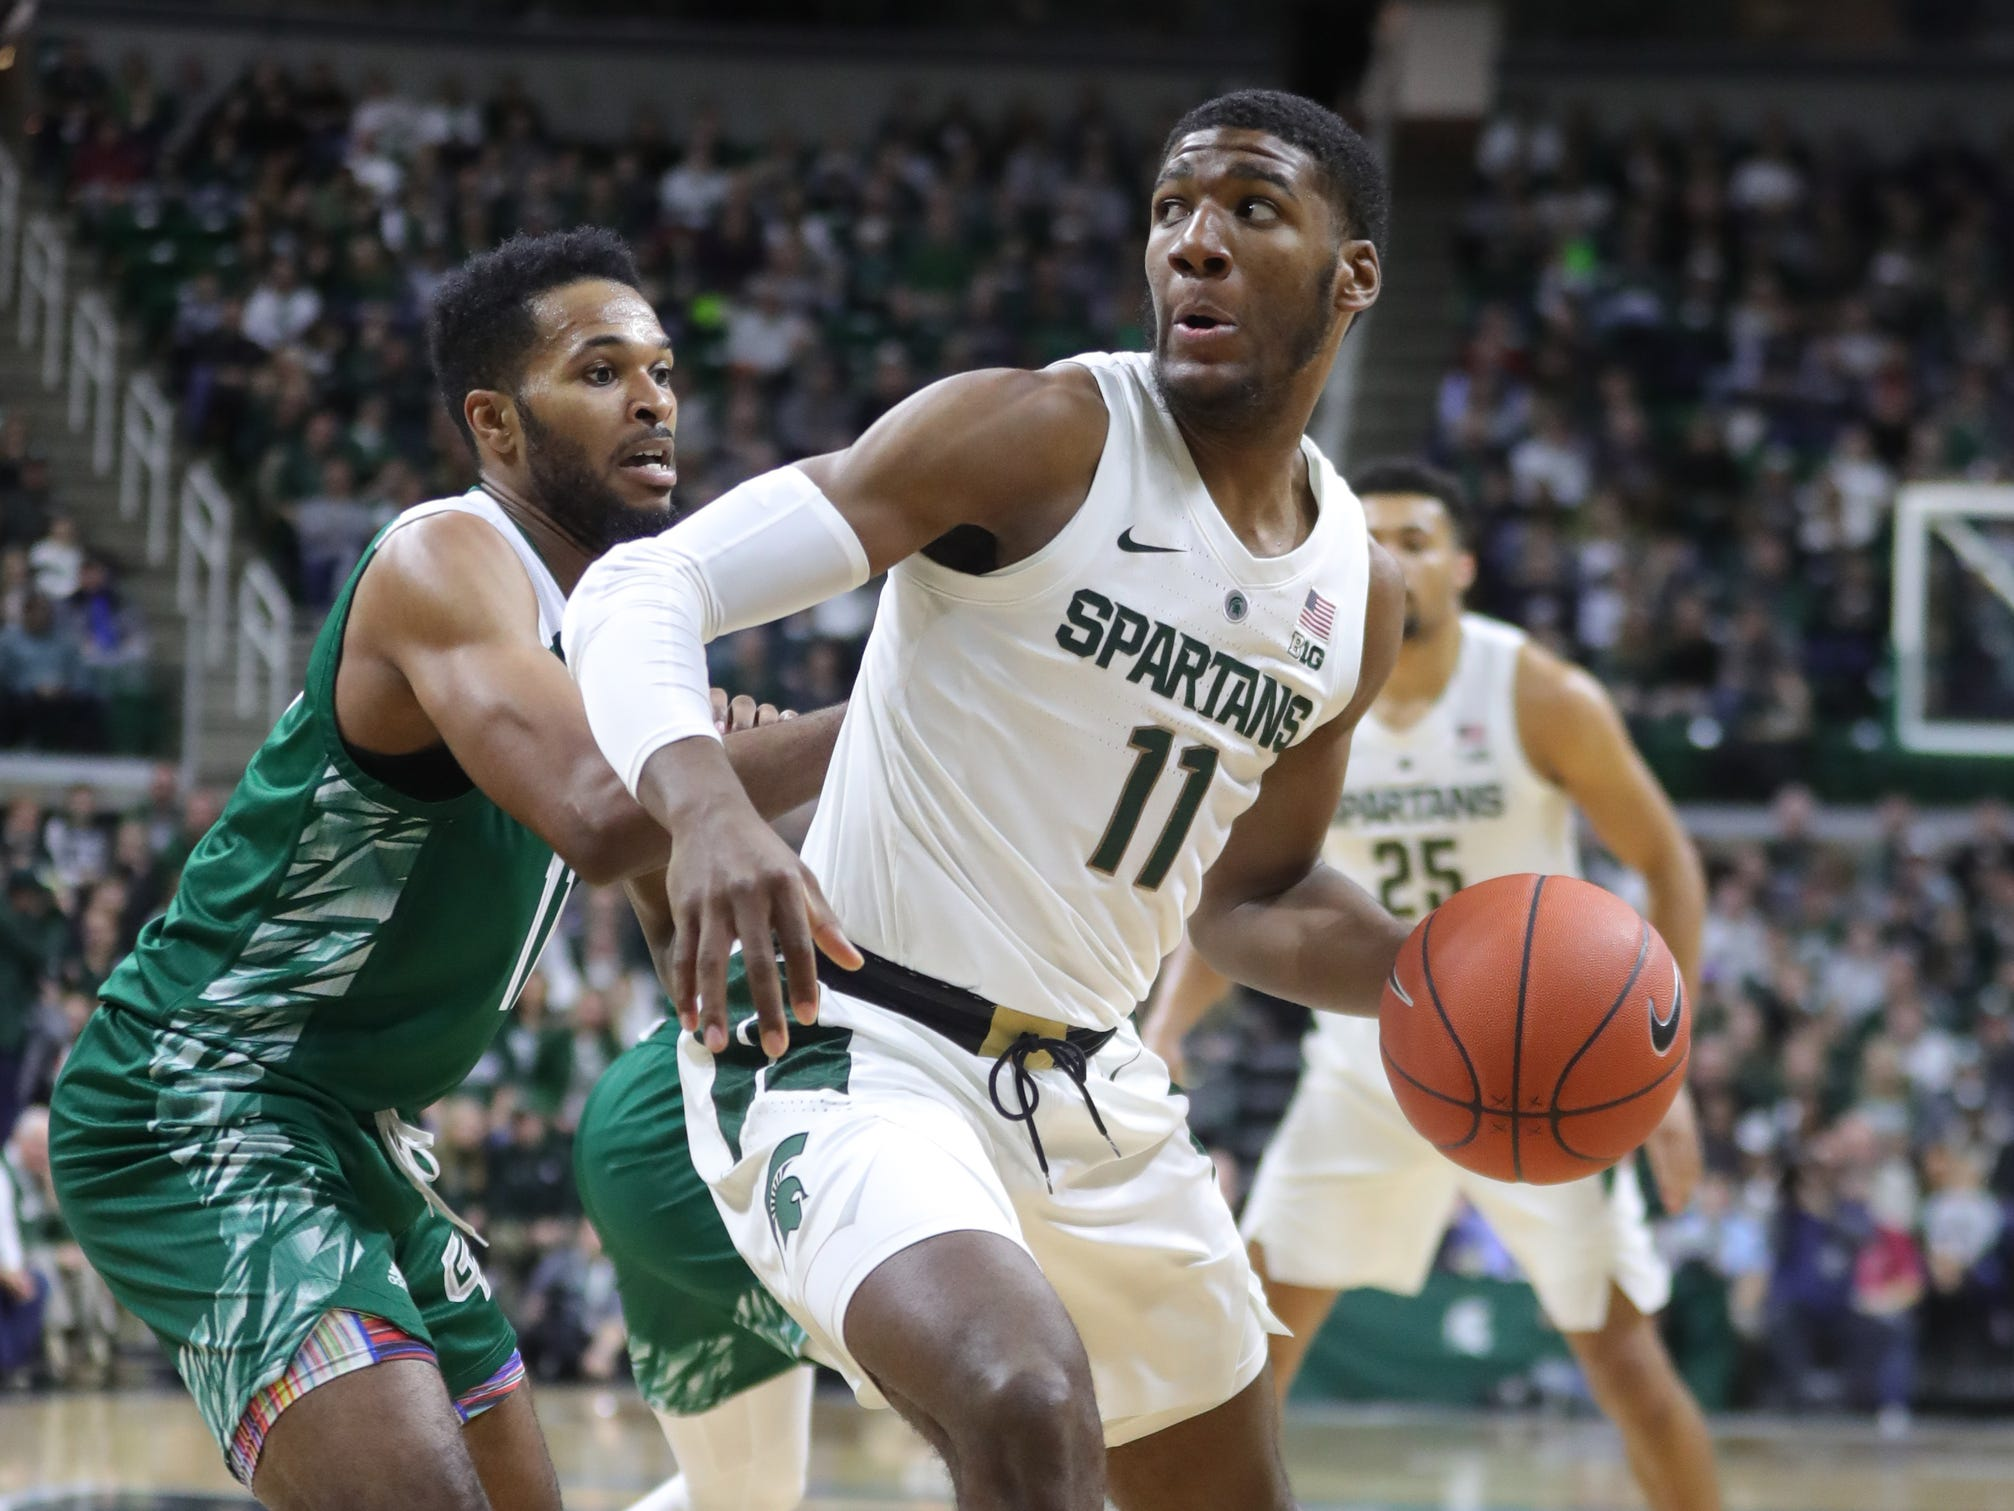 Michigan State forward Aaron Henry drives against Green Bay guard JayQuan McCloud, Dec. 16, 2018 at the Breslin Center in East Lansing.